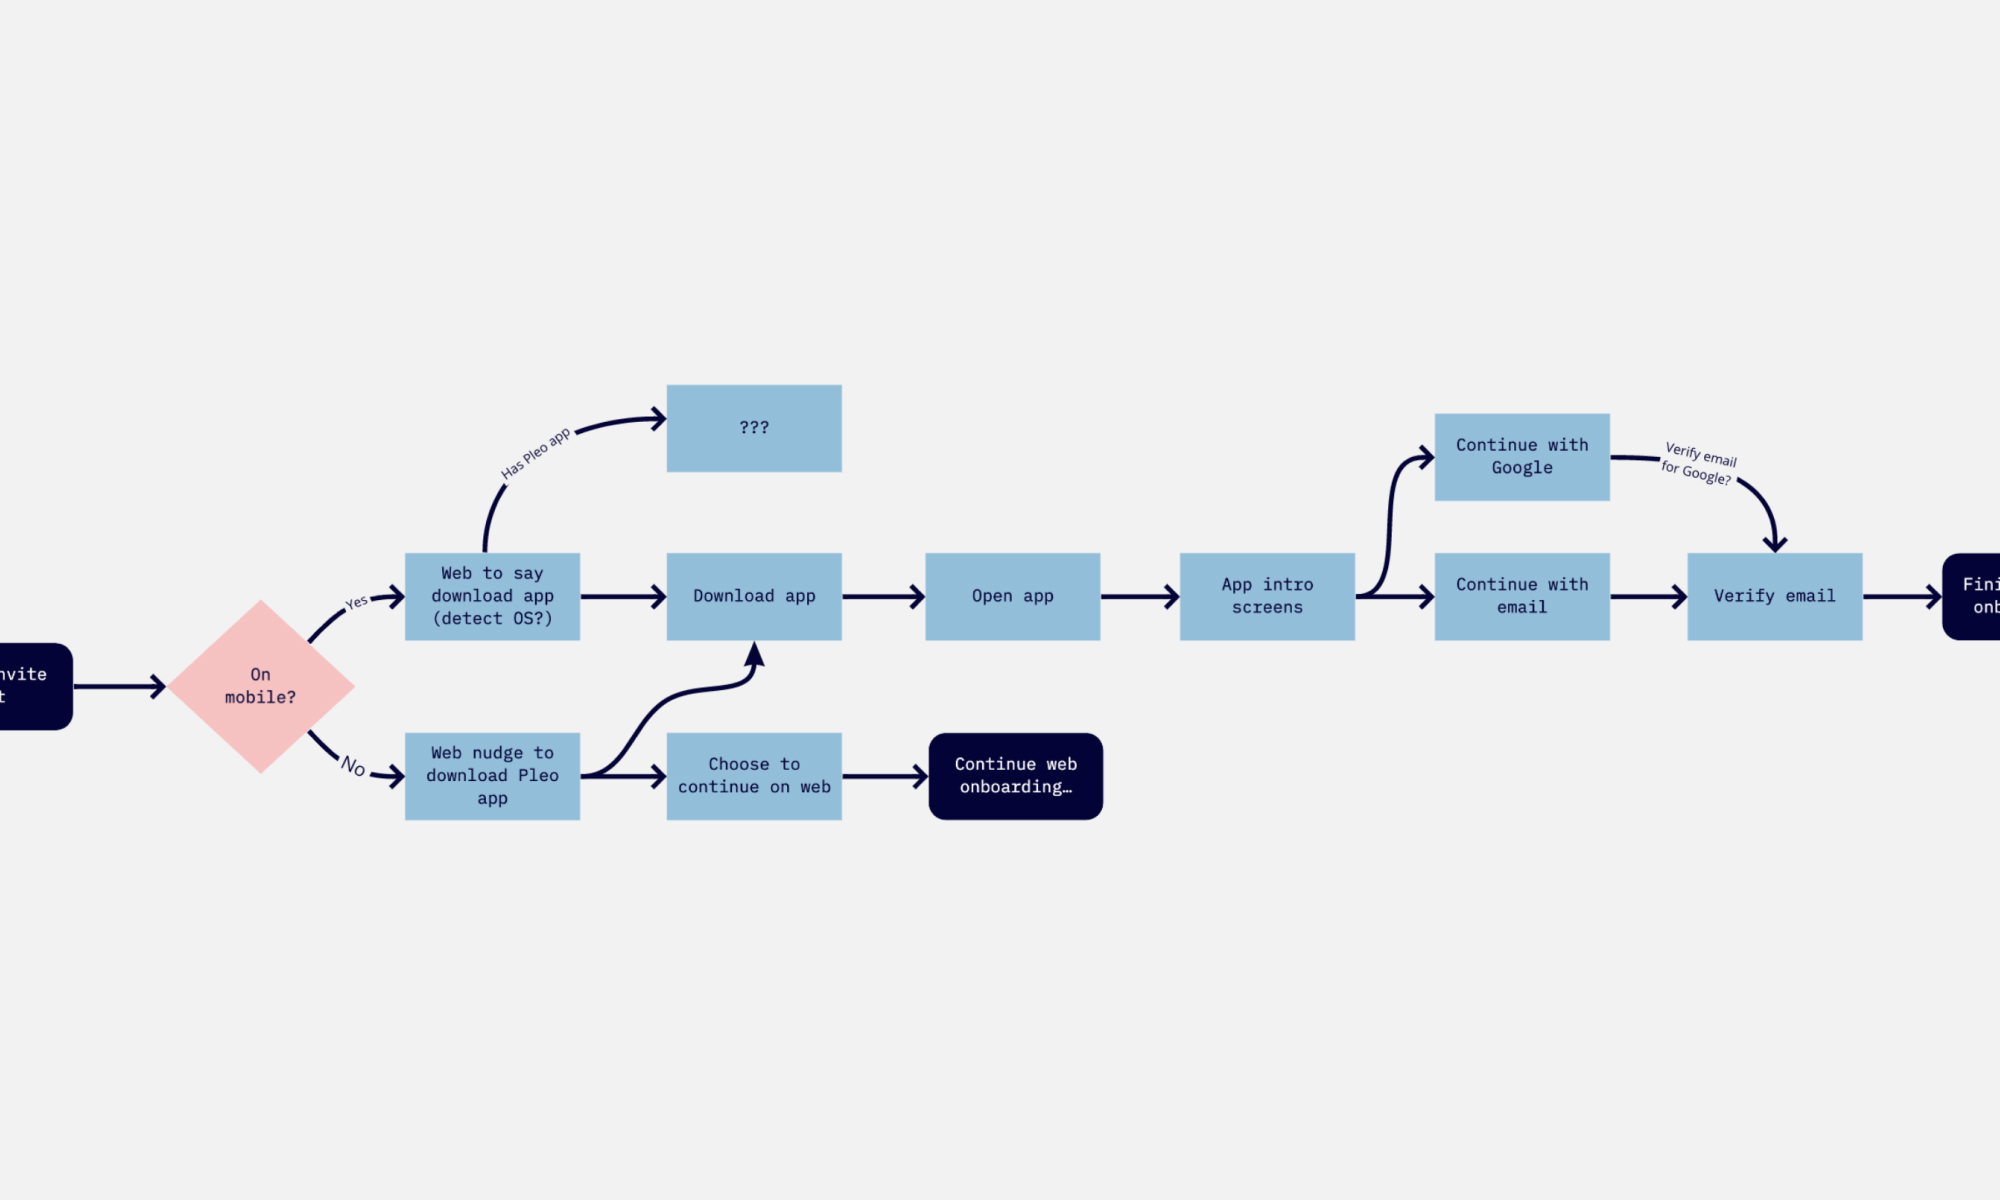 The onboarding flow chart